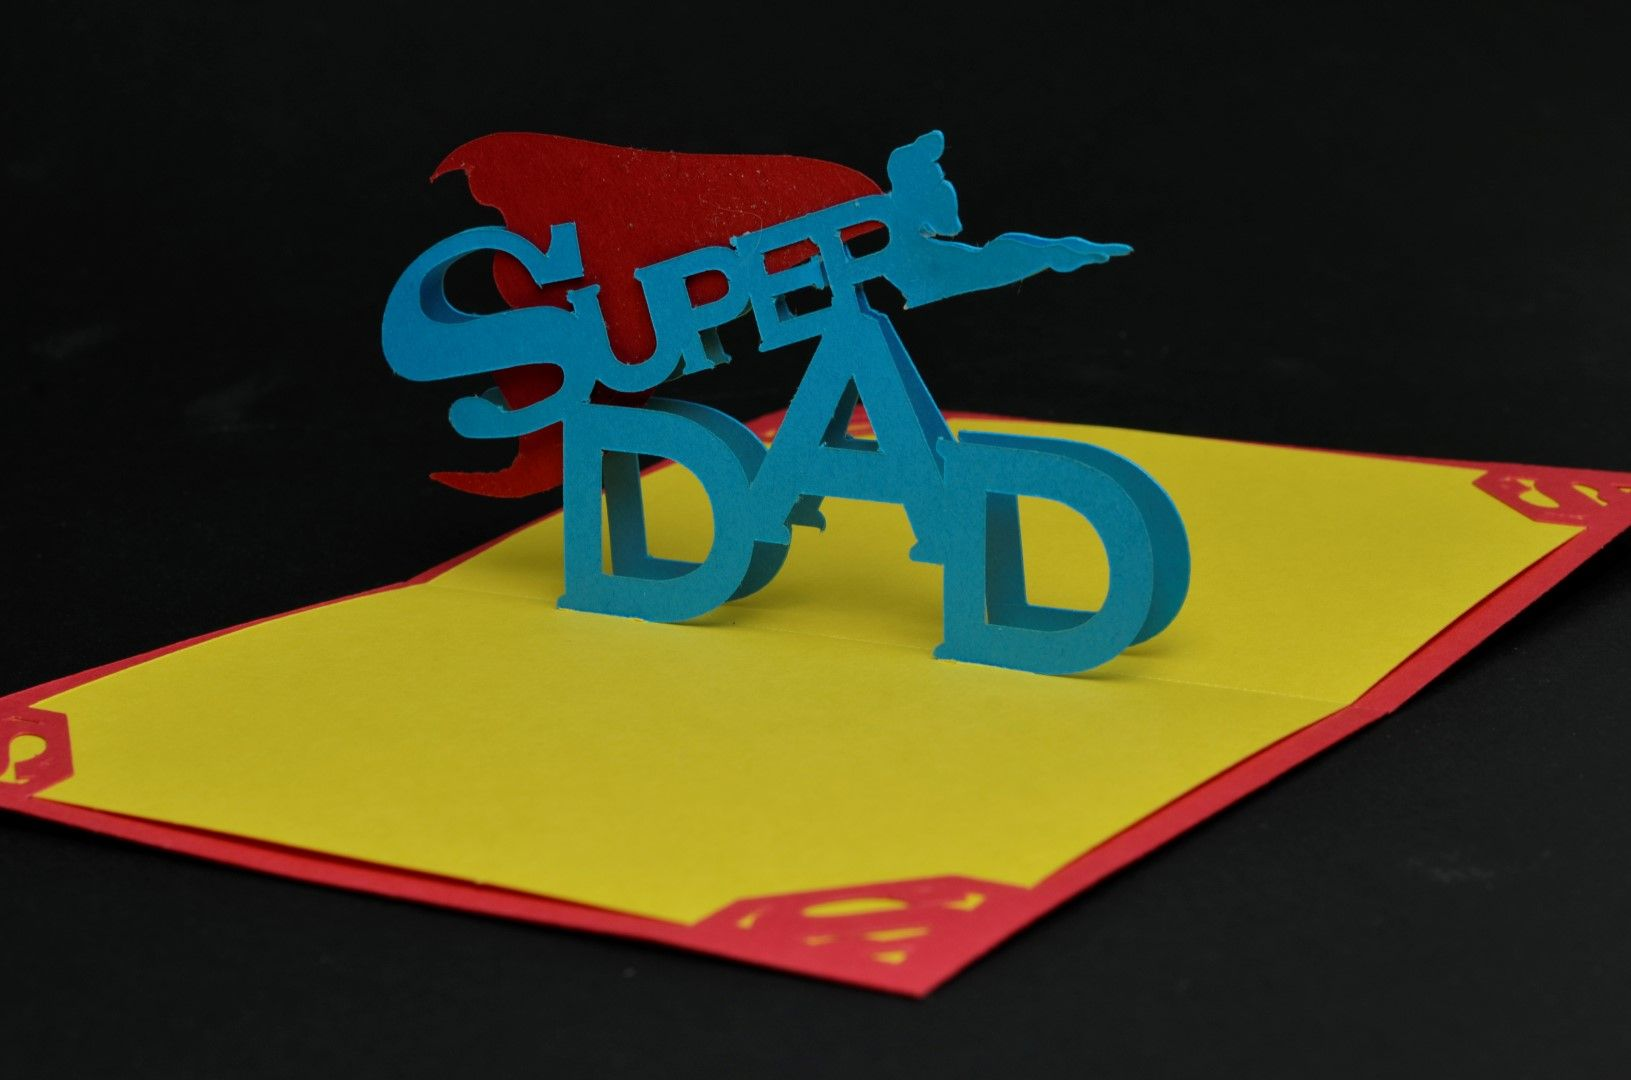 Father S Day Super Dad Pop Up Card Tutorial Creative Pop Up Cards Pop Up Card Templates Pop Up Cards Birthday Card Template